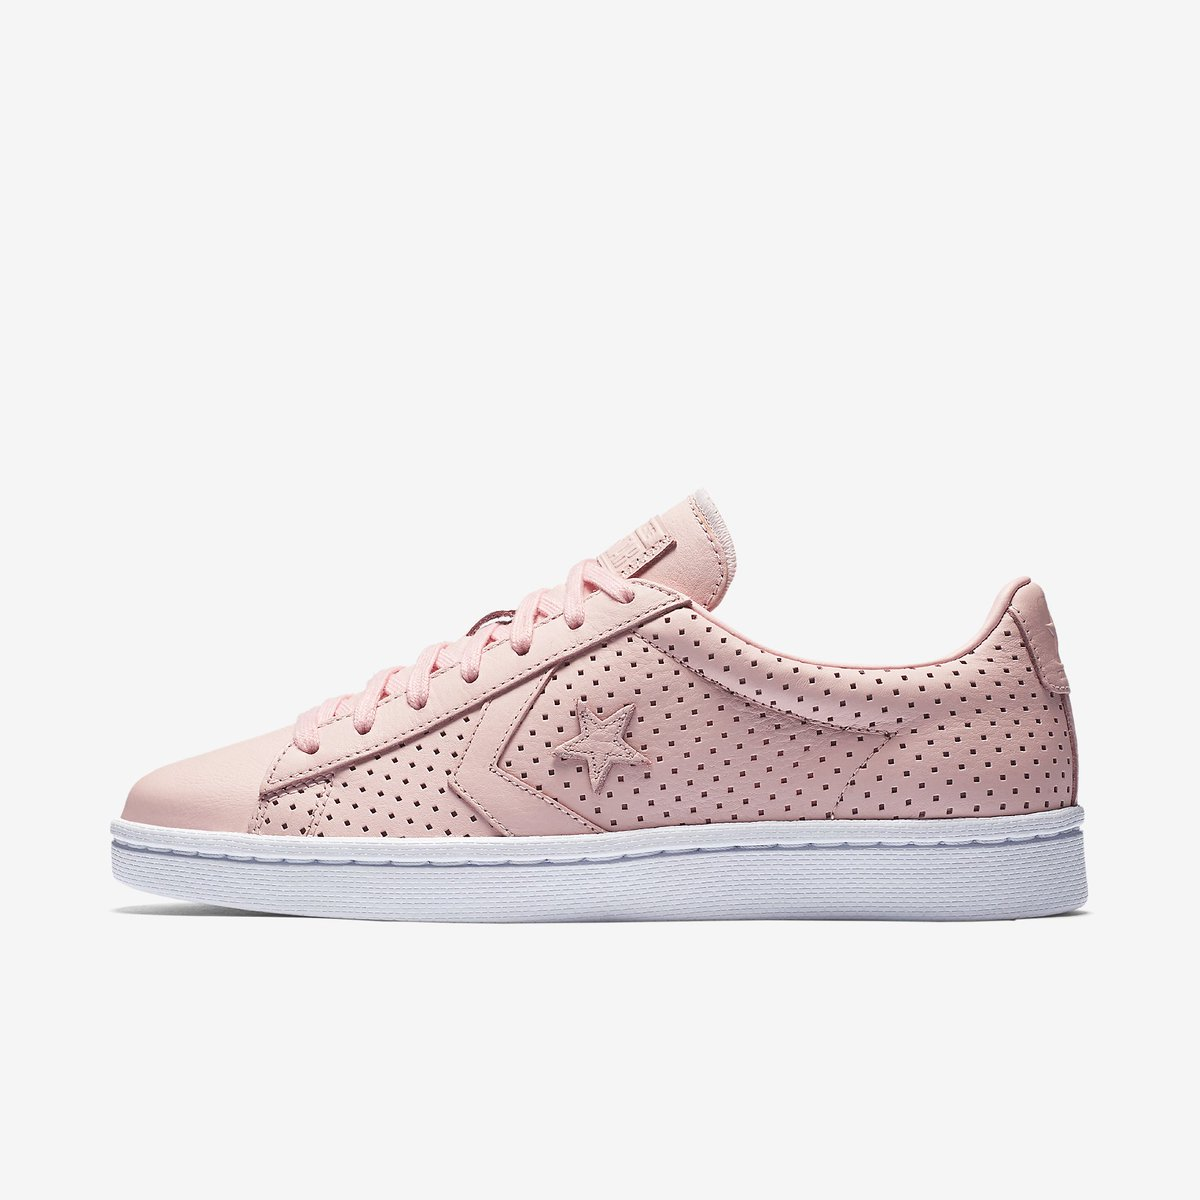 a0d9f483fb7f converse pro leather botanical gardens pink porpoise